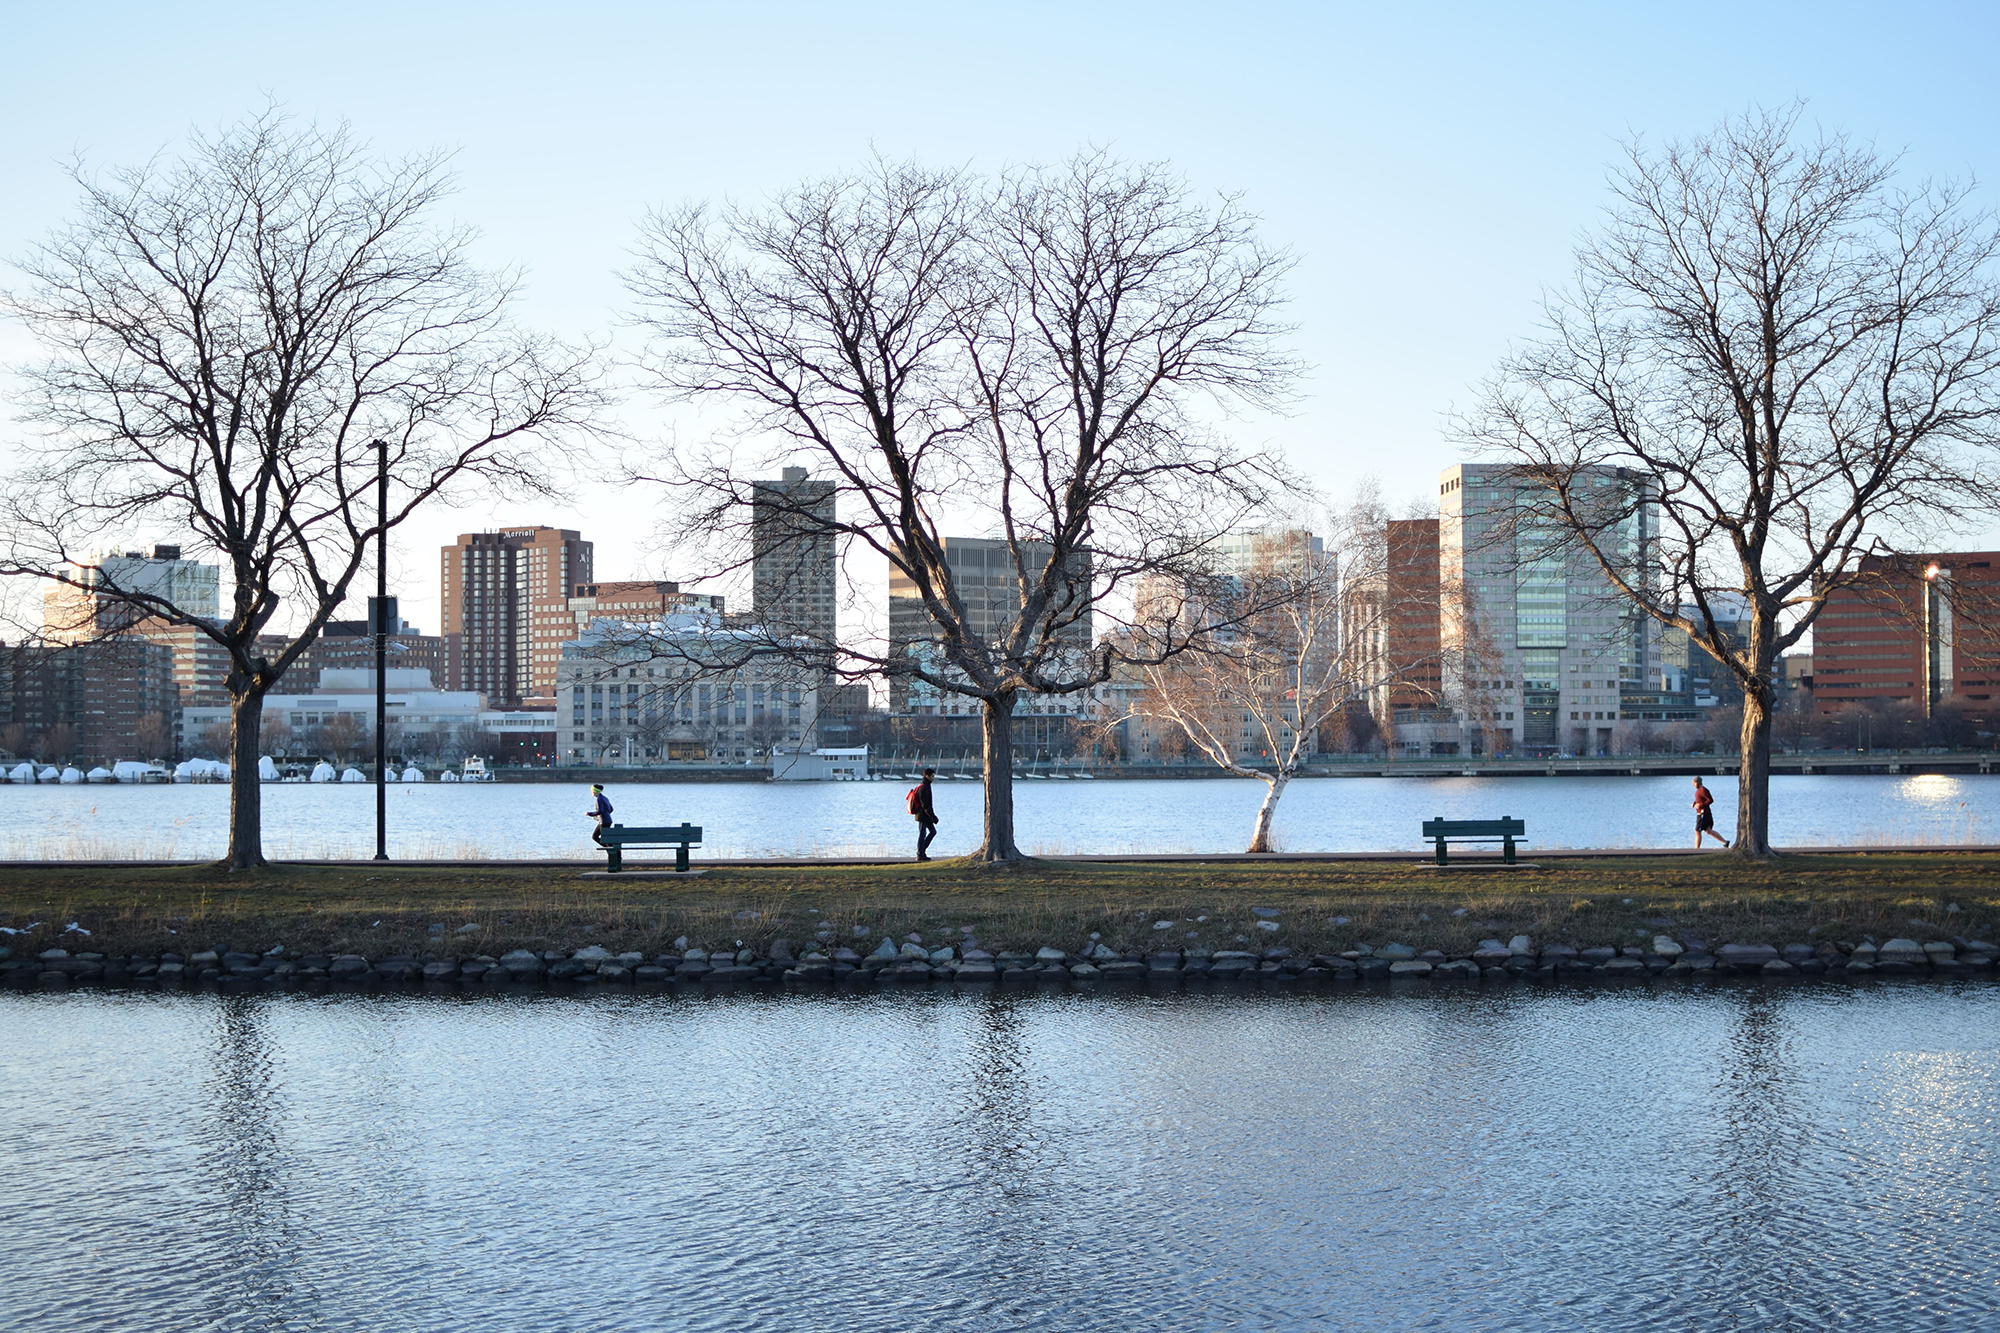 Closer - 8 Fun Things to Do in Boston - FilterGrade